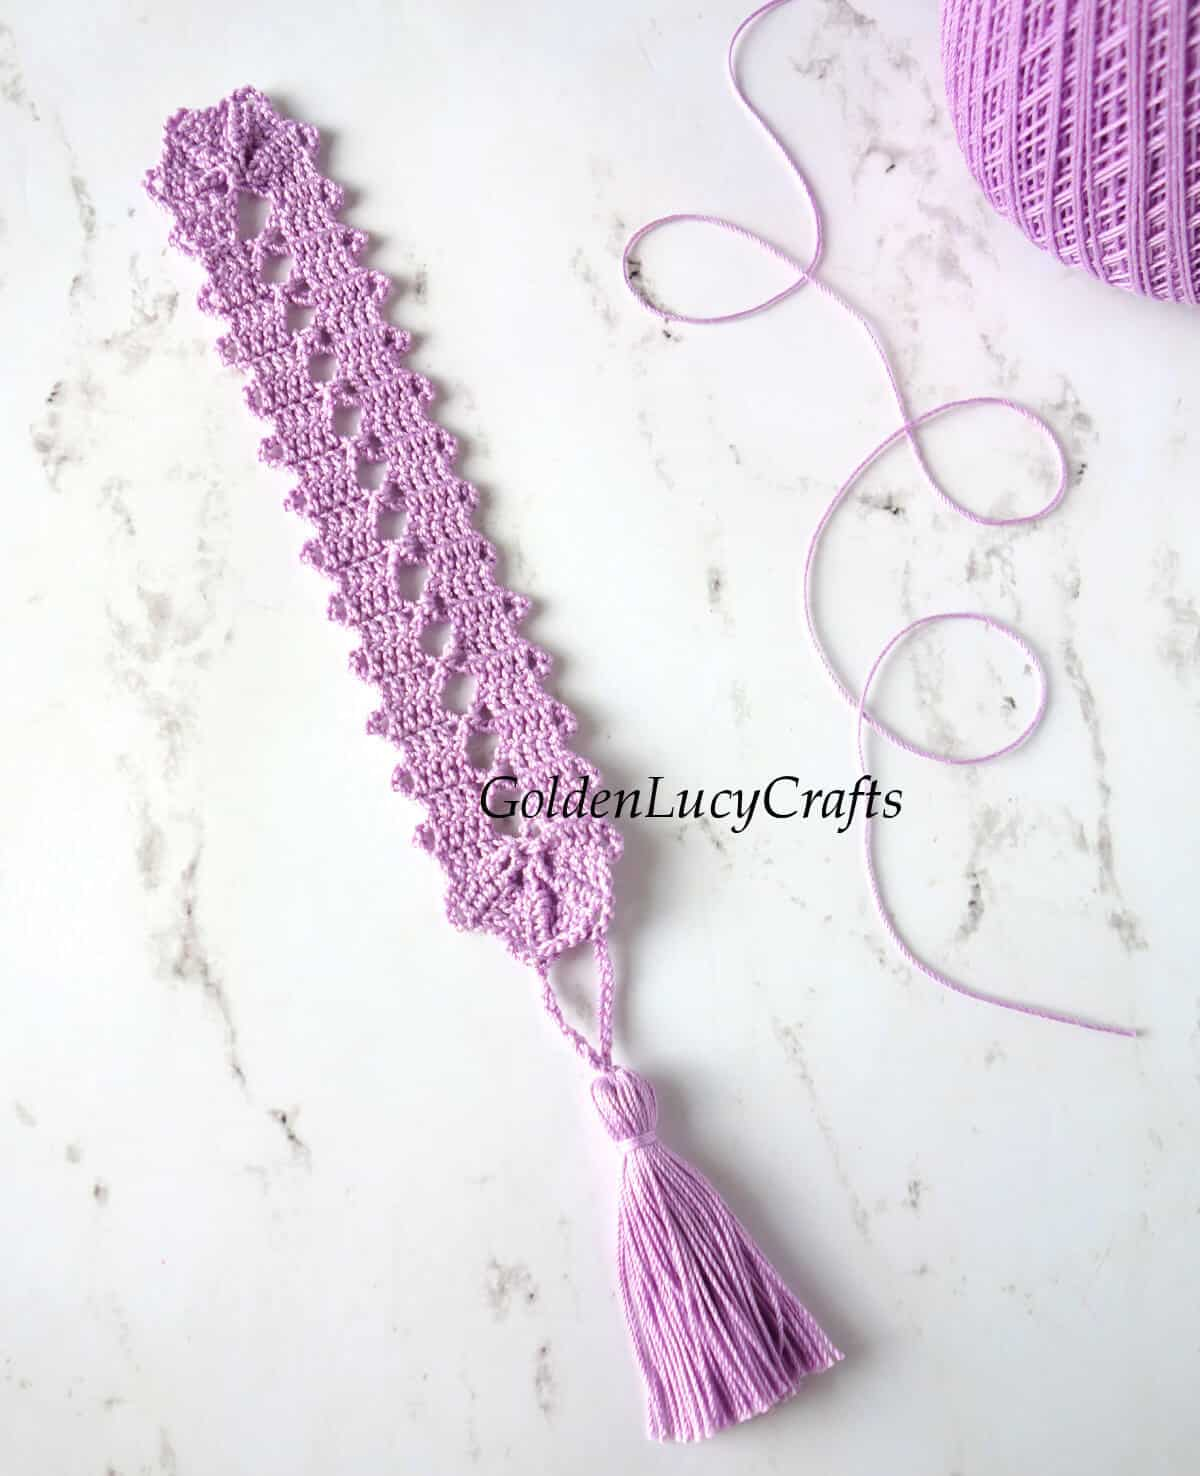 Crochet bookmark and ball of thread next to it.